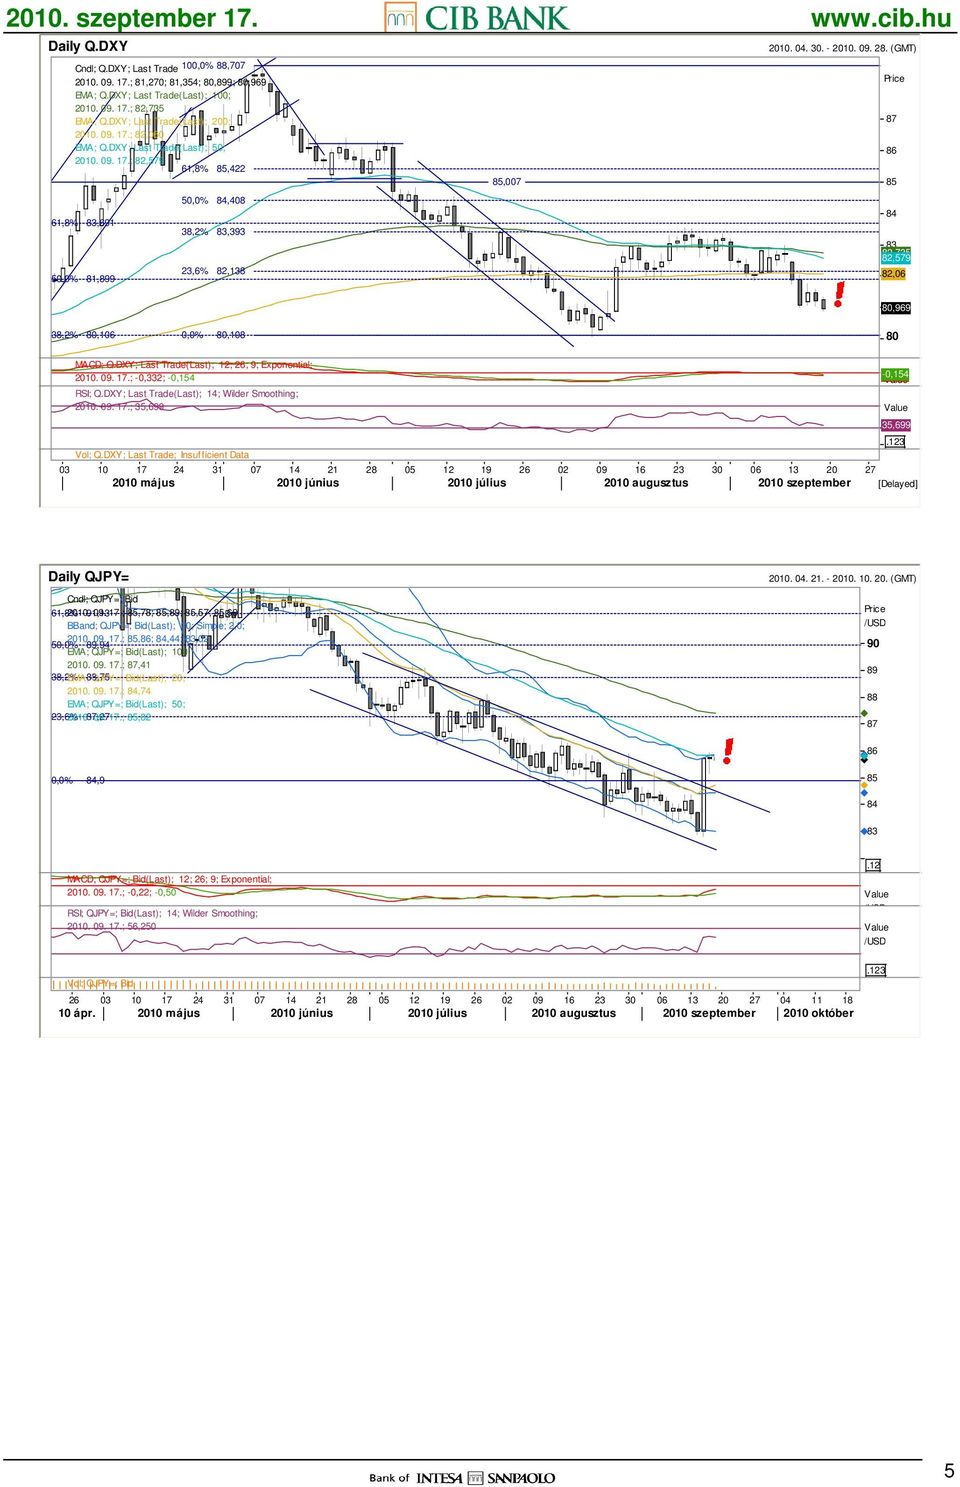 (GMT) Price 87 86 85 84 83 82,735 82,579 82,06 80,969 81 38,2% 80,106 0,0% 80,108 80 MACD; Q.DXY; Last Trade(Last); 12; 26; 9; Exponential; 2010. 09. 17.; -0,332; -0,154-0,332-0,154 Value RSI; Q.